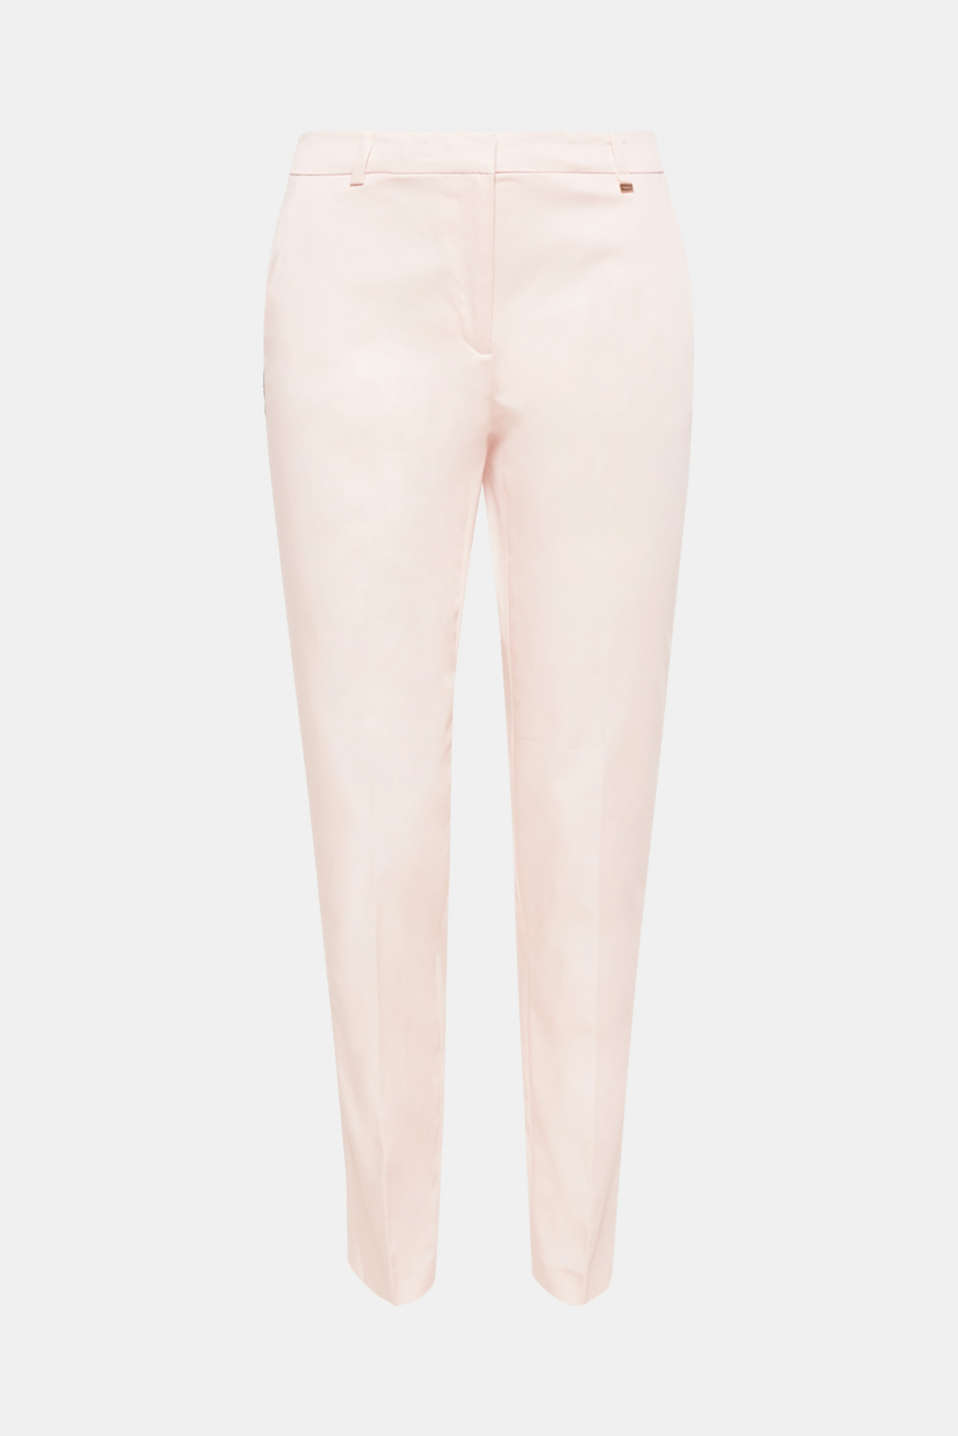 These lightweight stretch satin trousers come in a perfect business look, and are also comfortable and lightweight